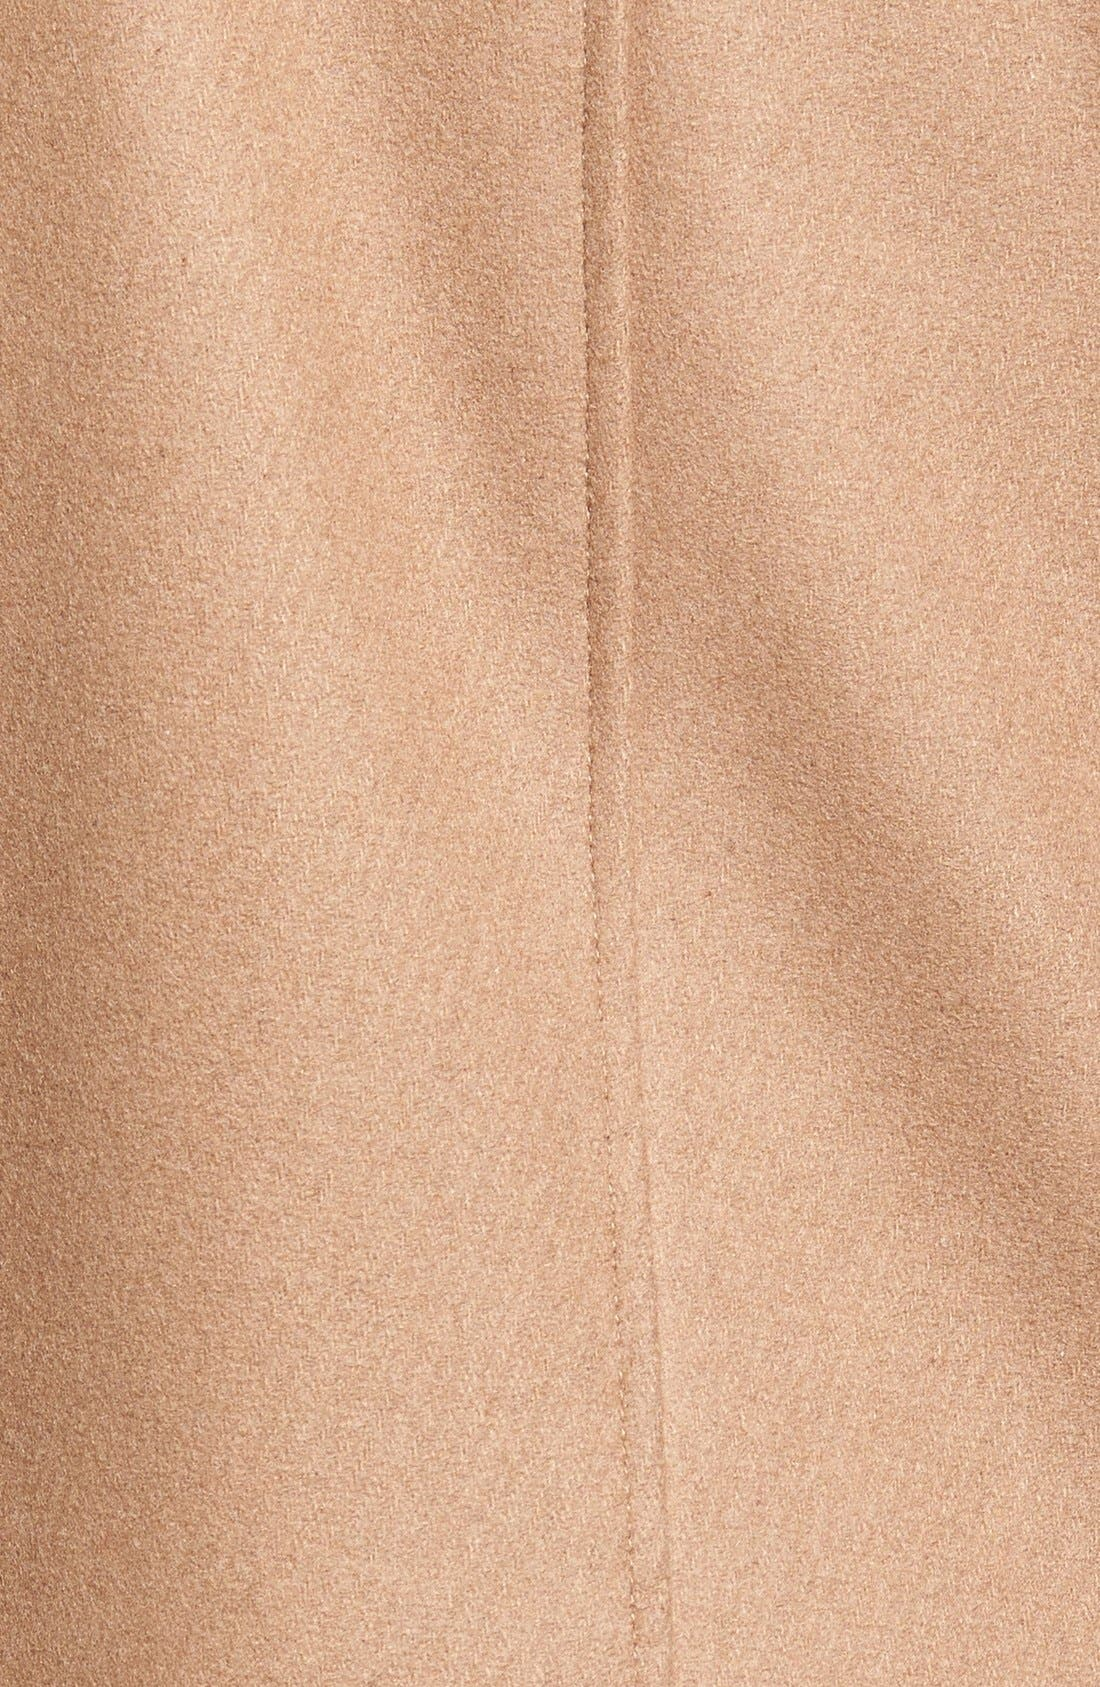 Cole Haan Hooded Duffle Coat with Faux Fur Trim,                             Alternate thumbnail 5, color,                             Camel